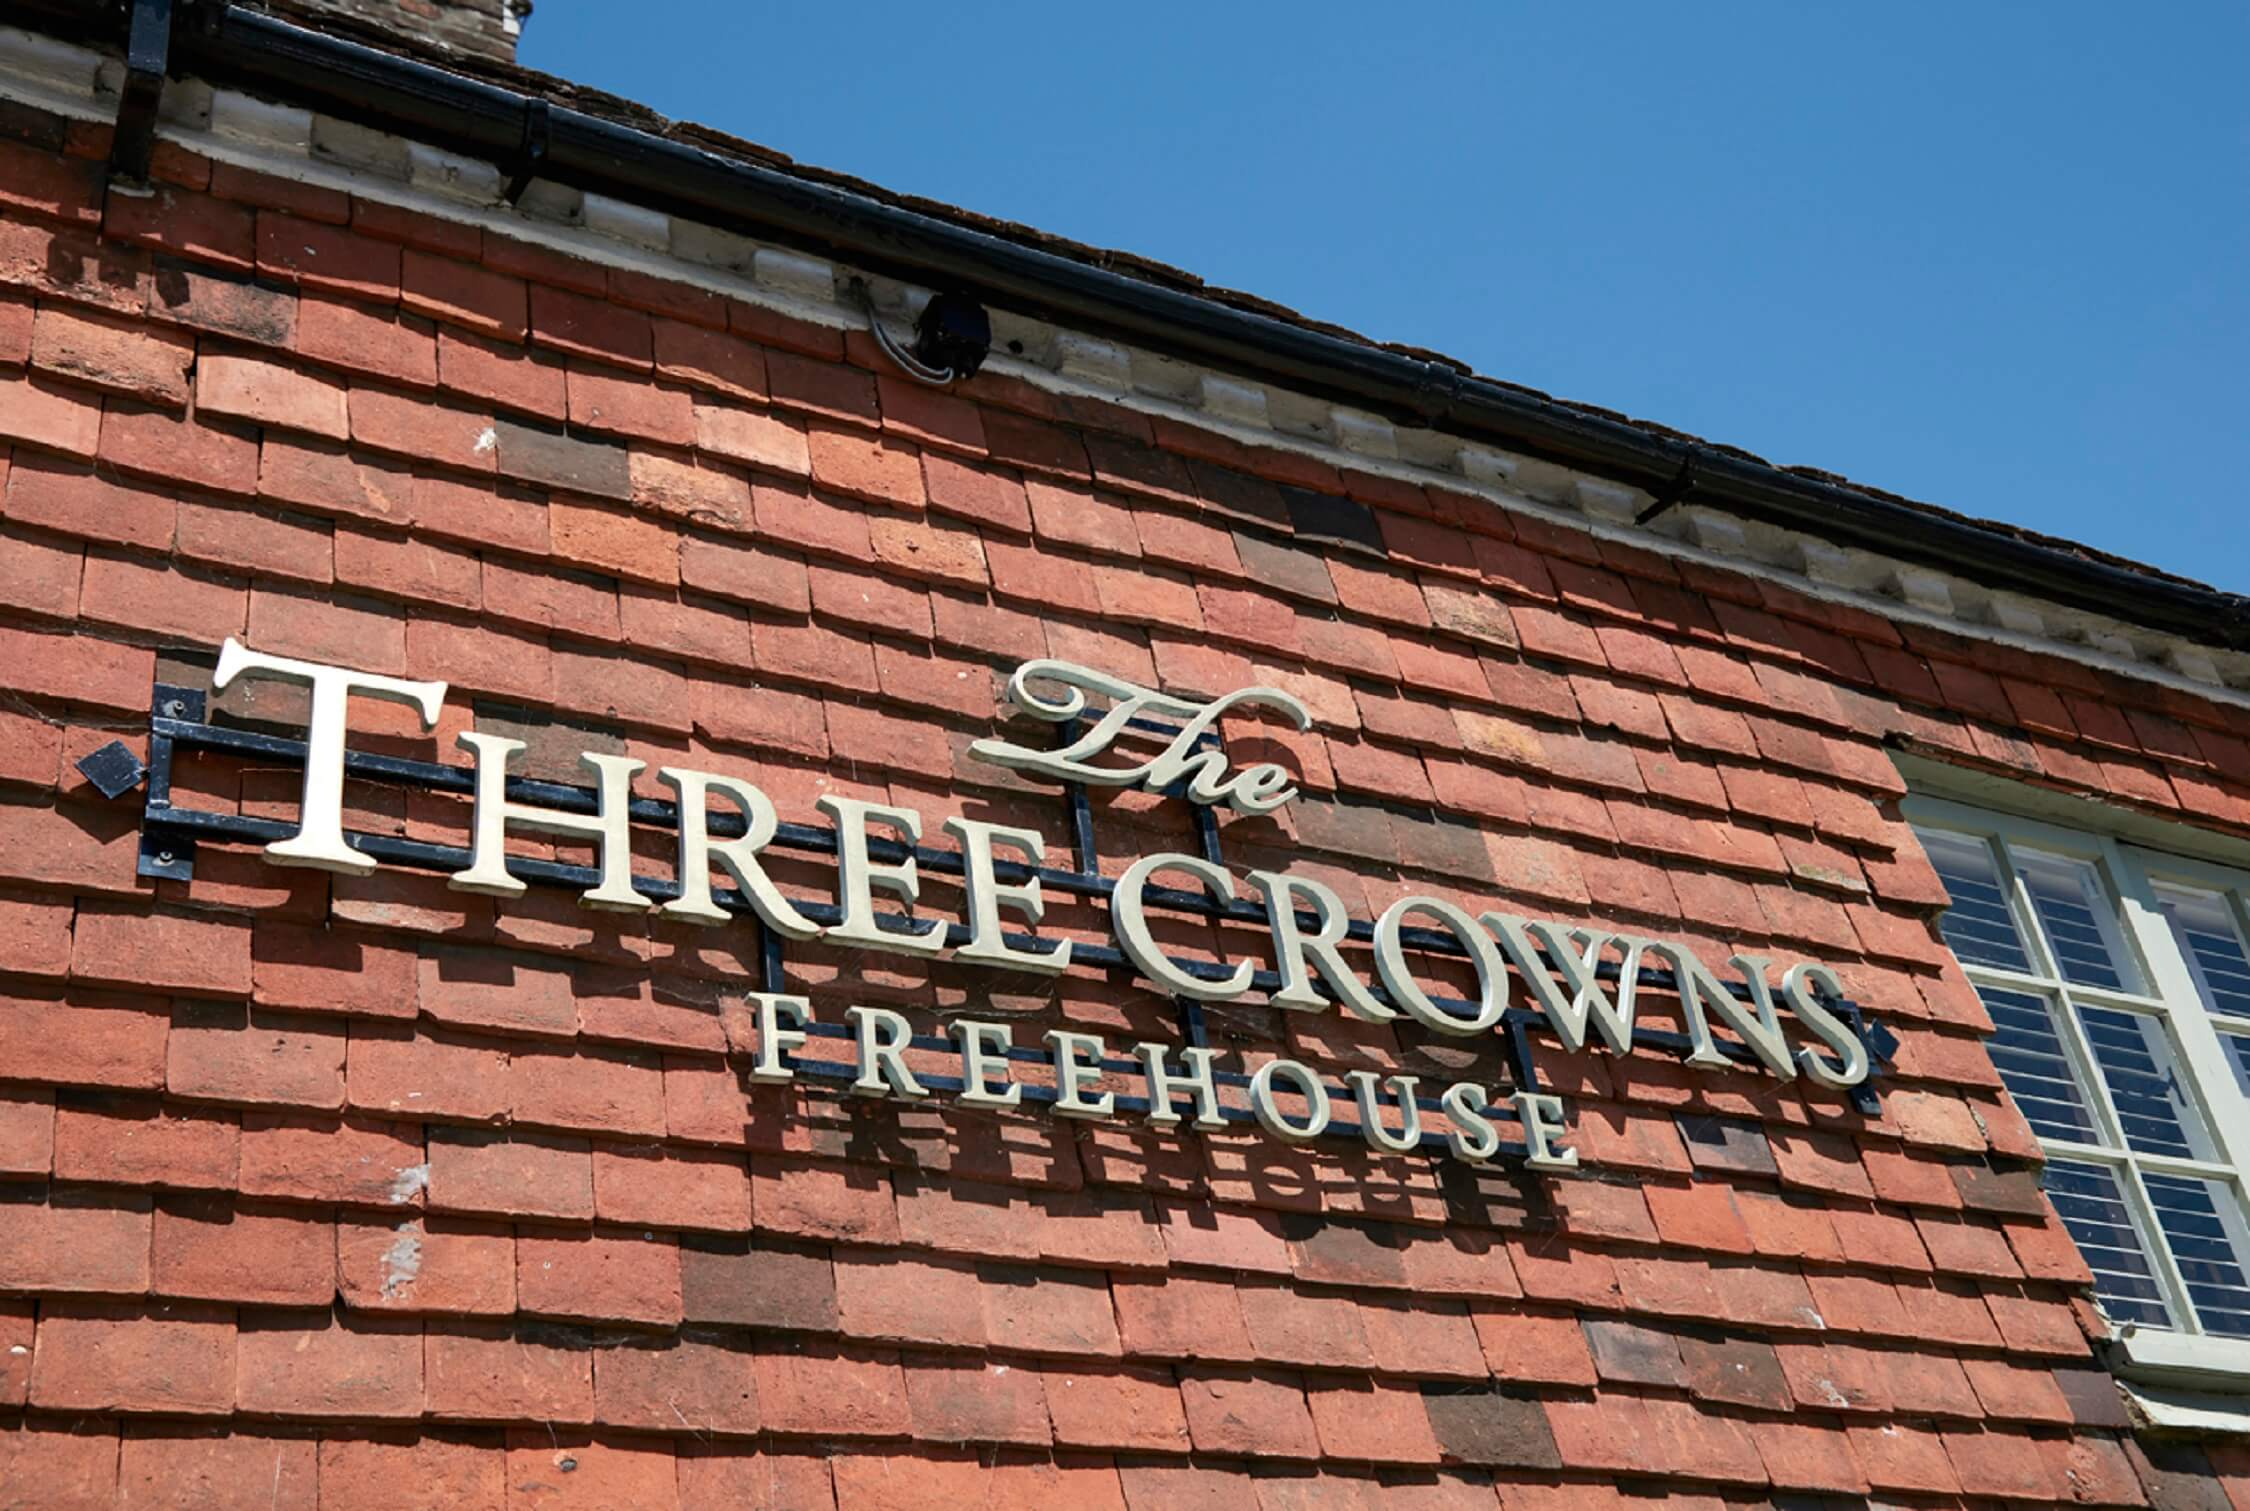 Three Crowns - fantastic local pub